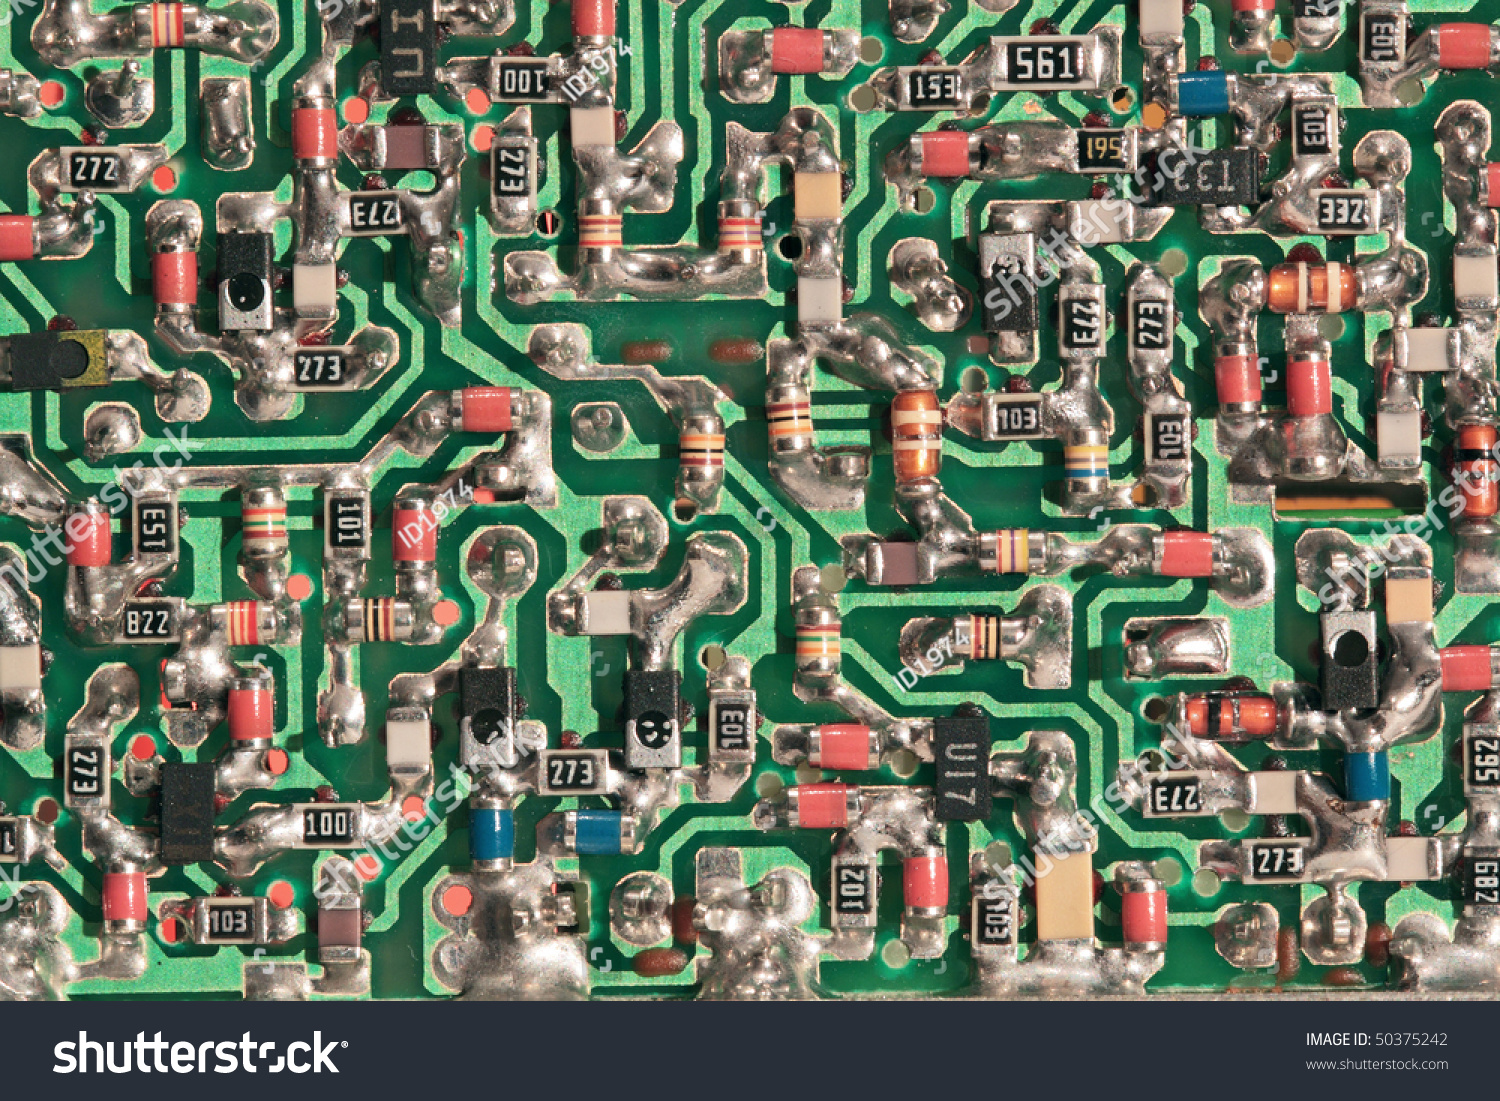 Green Printedcircuit Board Small Radio Components Stock Photo Edit Circuit The Printed And On It